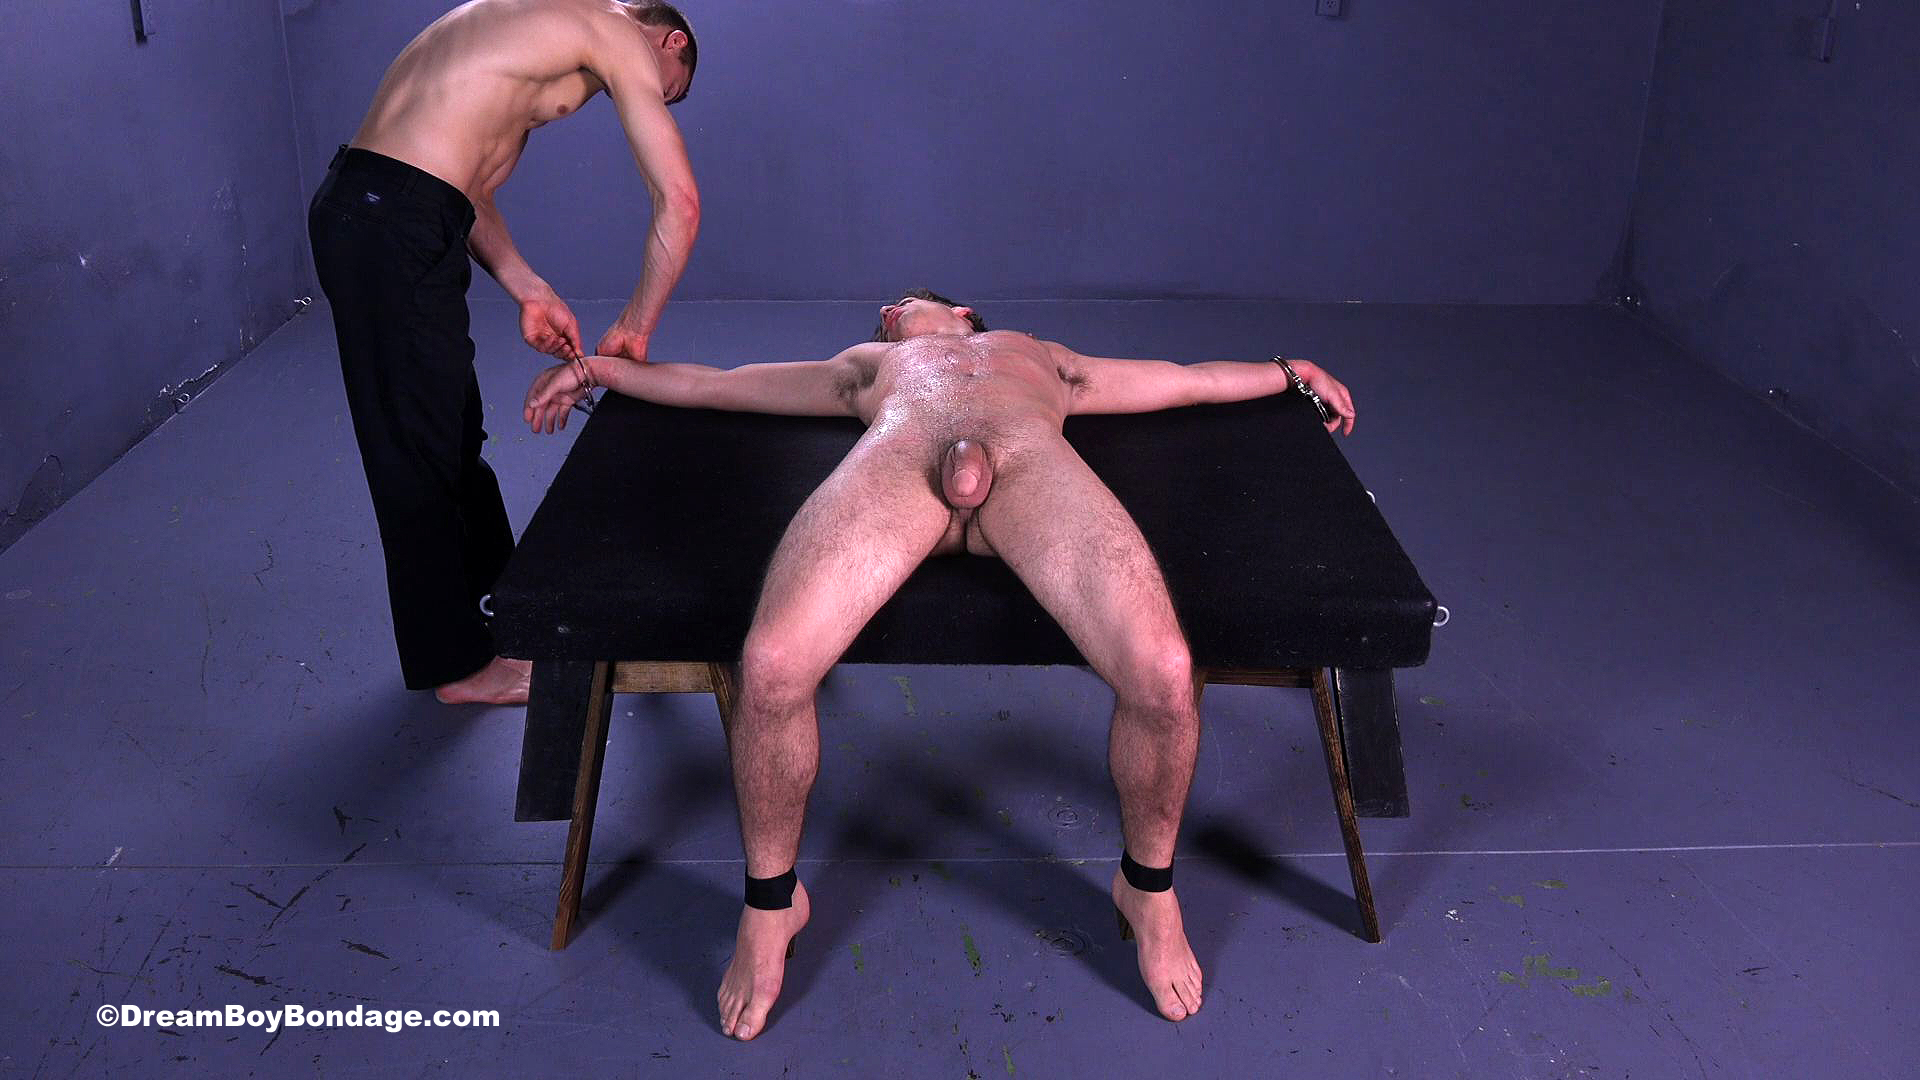 Great cumshot dreamboy bondage blog the man this?